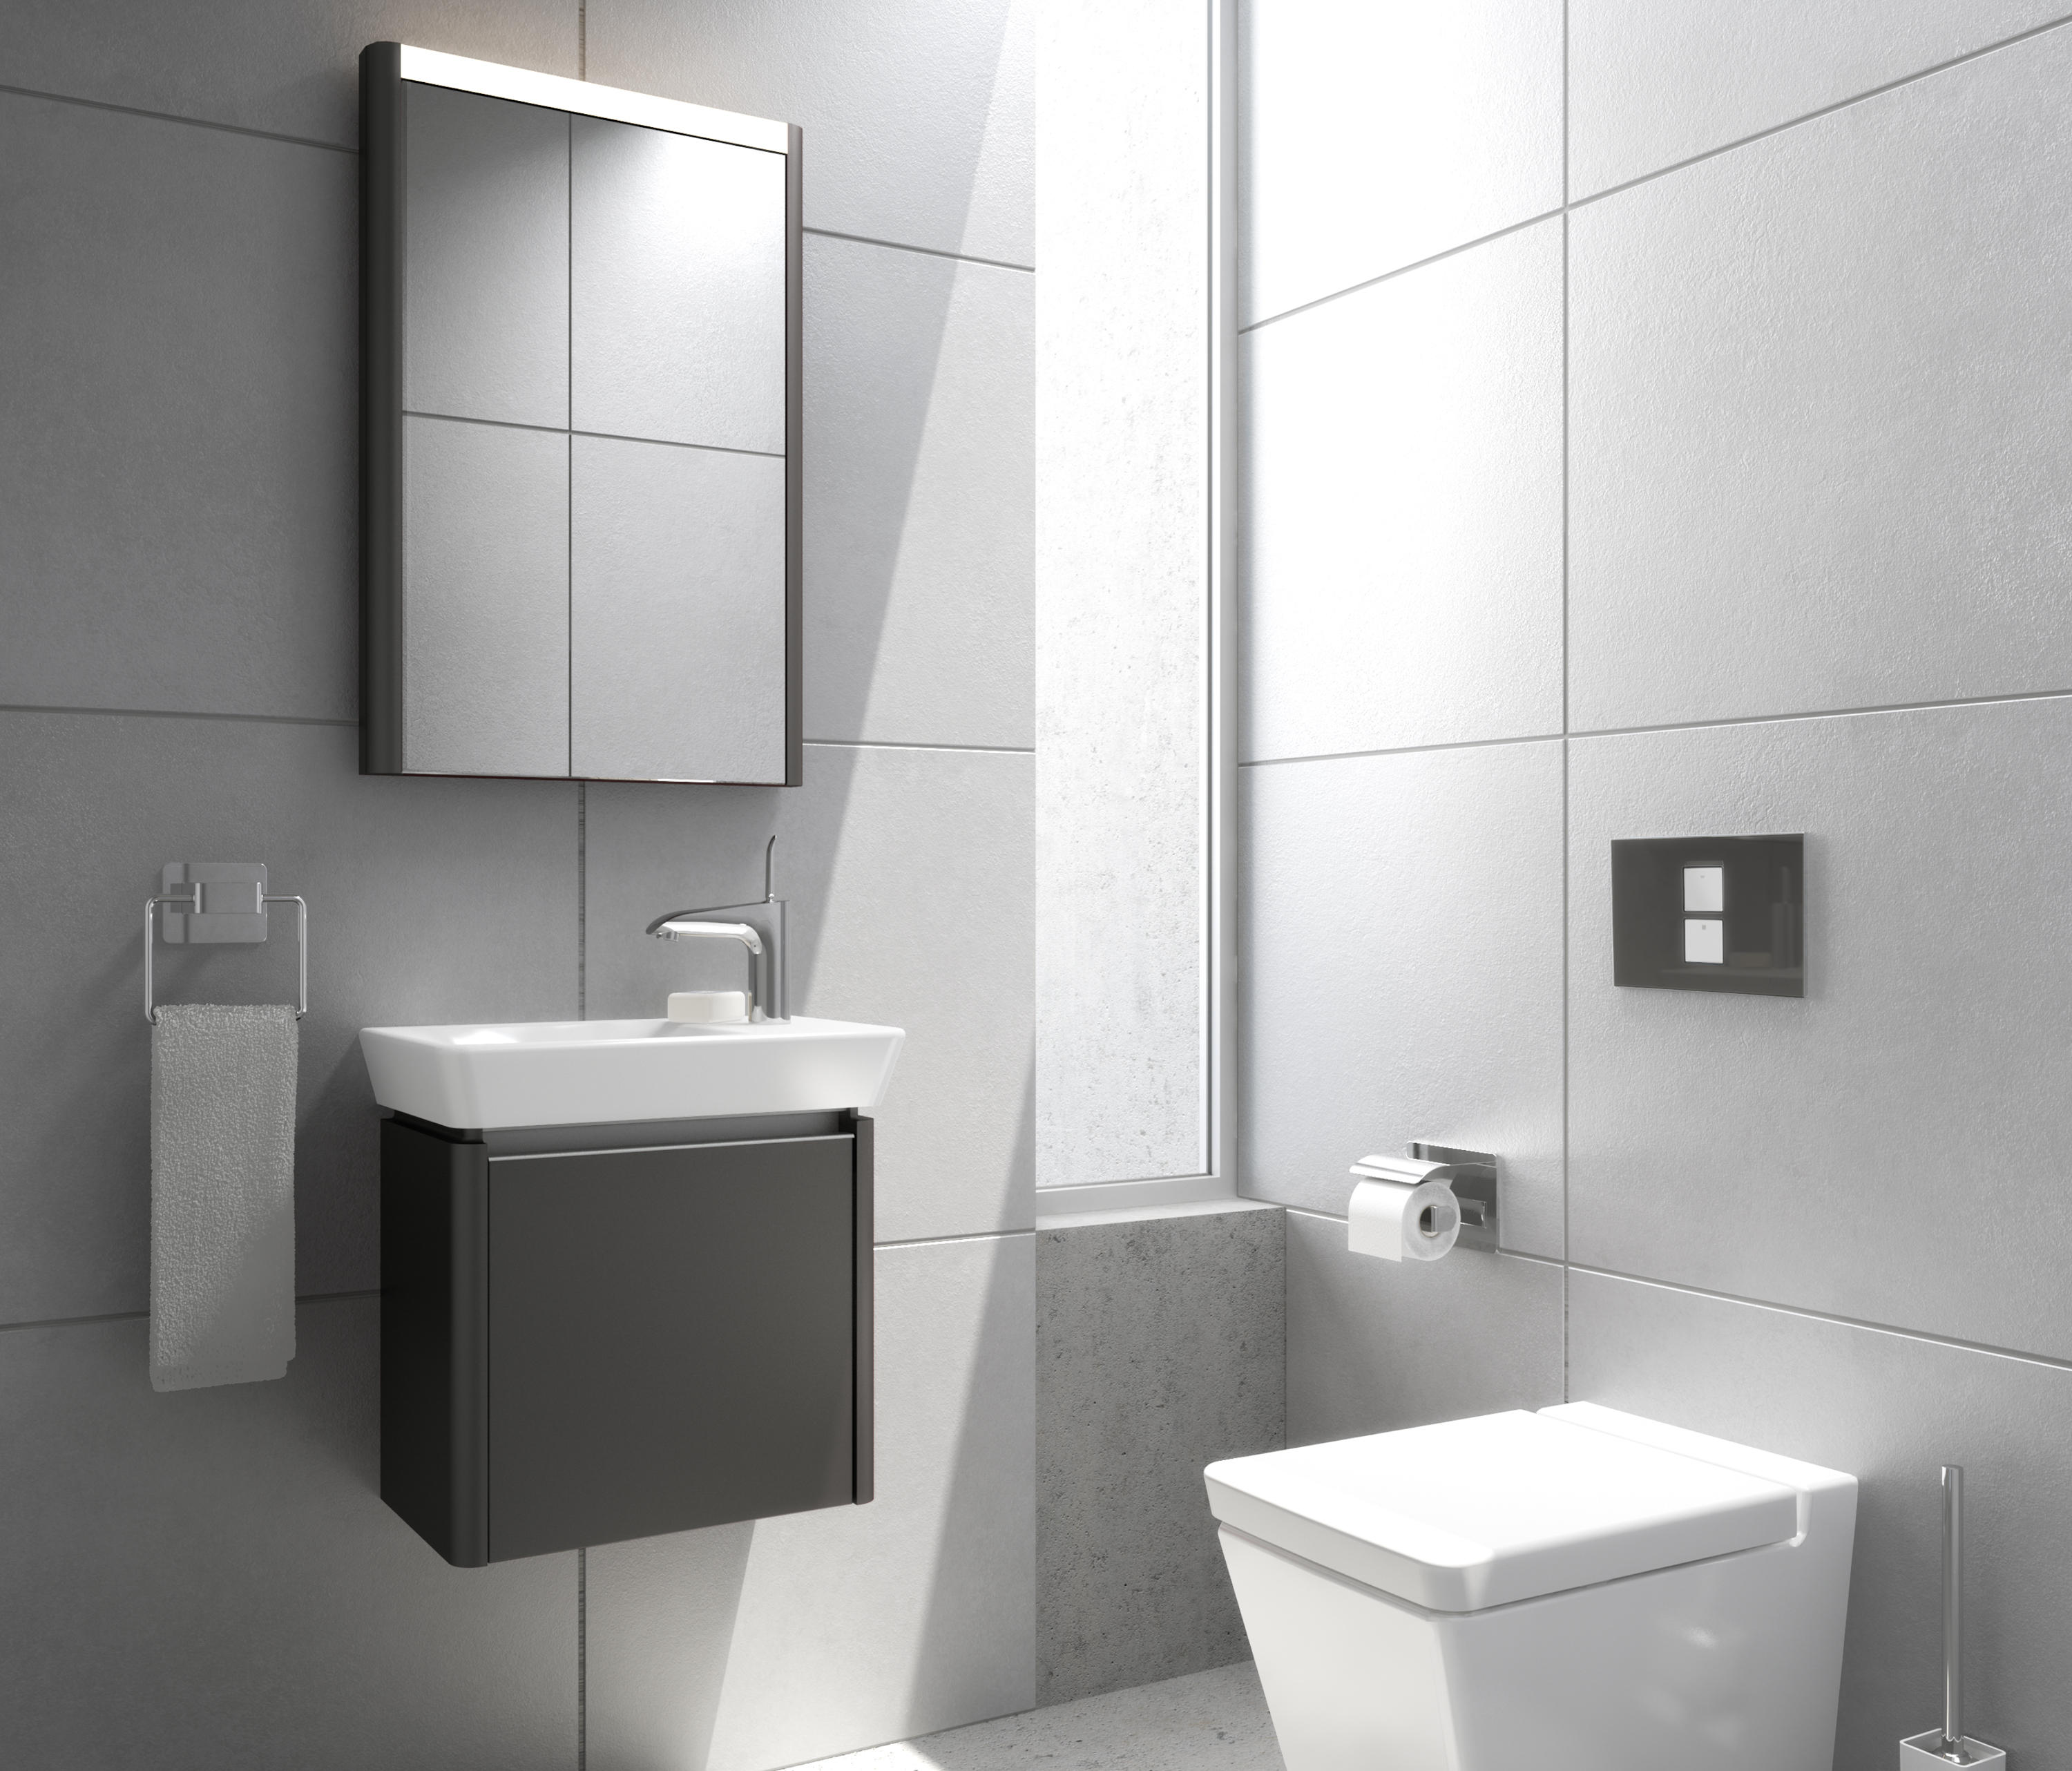 T4 Wall Hung Wc Wc From Vitra Bad Architonic